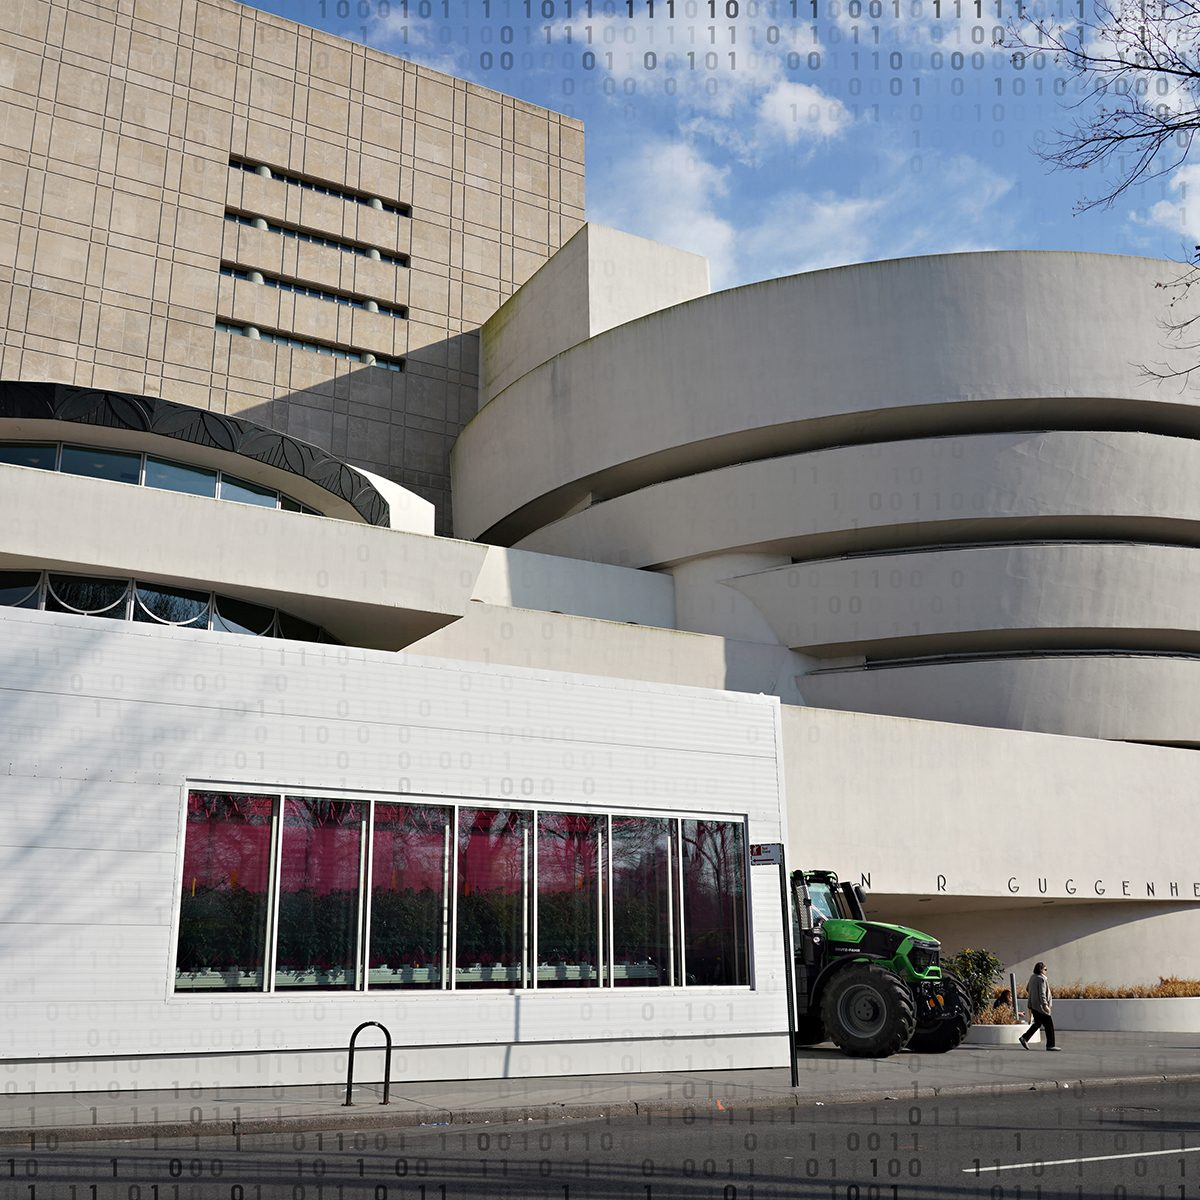 NEW YORK, NEW YORK - MARCH 20: A view of the temporarily closed Guggenheim Museum as the coronavirus continues to spread across the United States on March 20, 2020 in New York City. The World Health Organization declared coronavirus (COVID-19) a global pandemic on March 11th. (Photo by Cindy Ord/Getty Images)